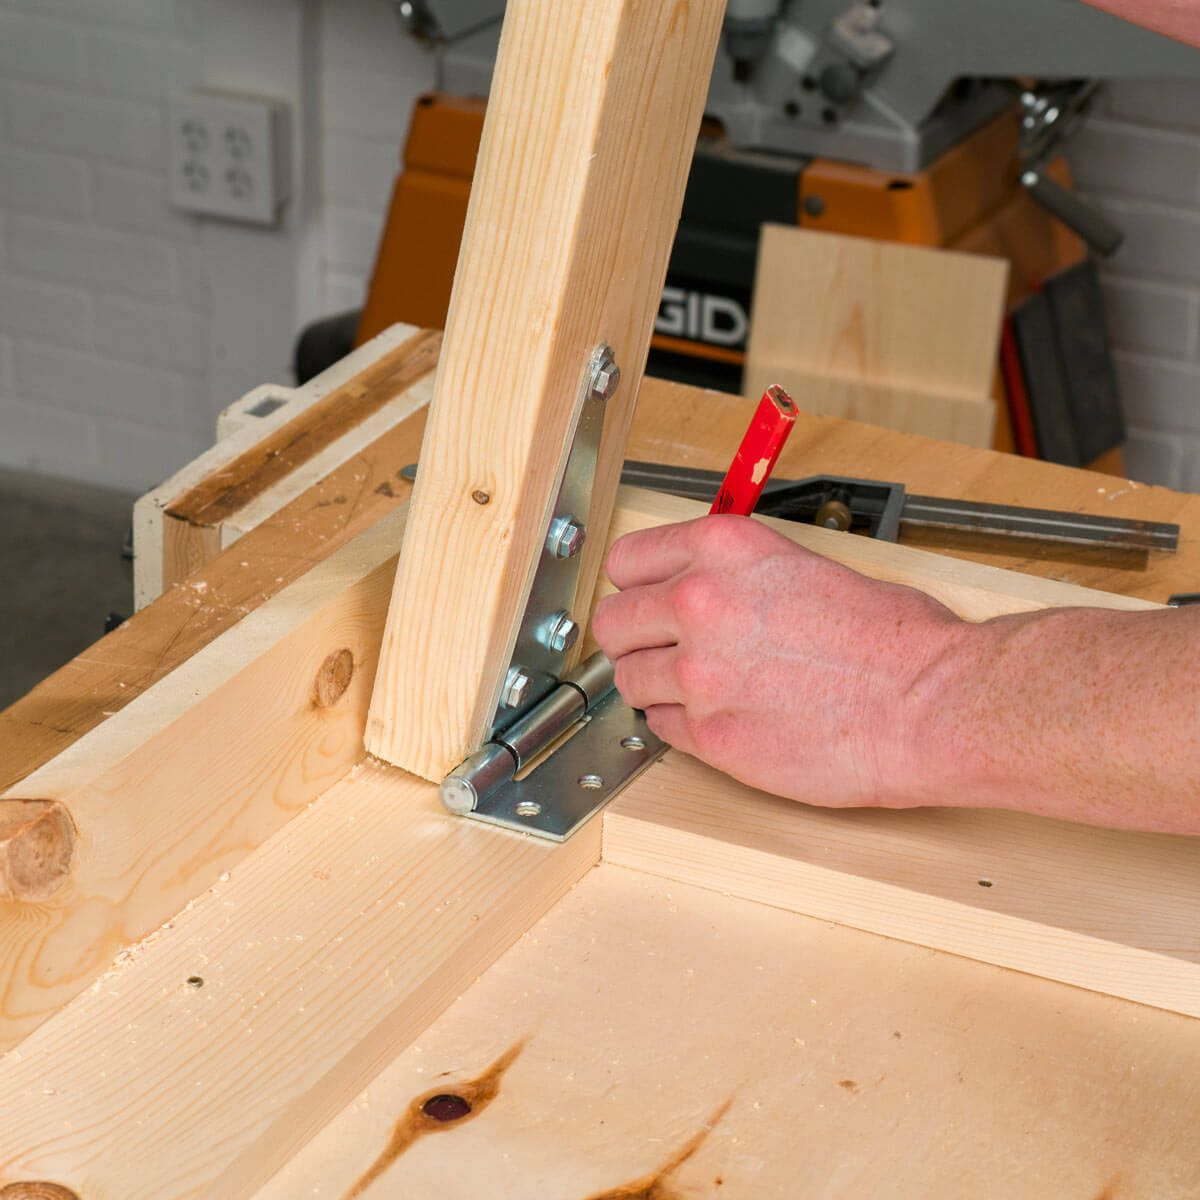 Fold Up Workbench Cut and attach Legs